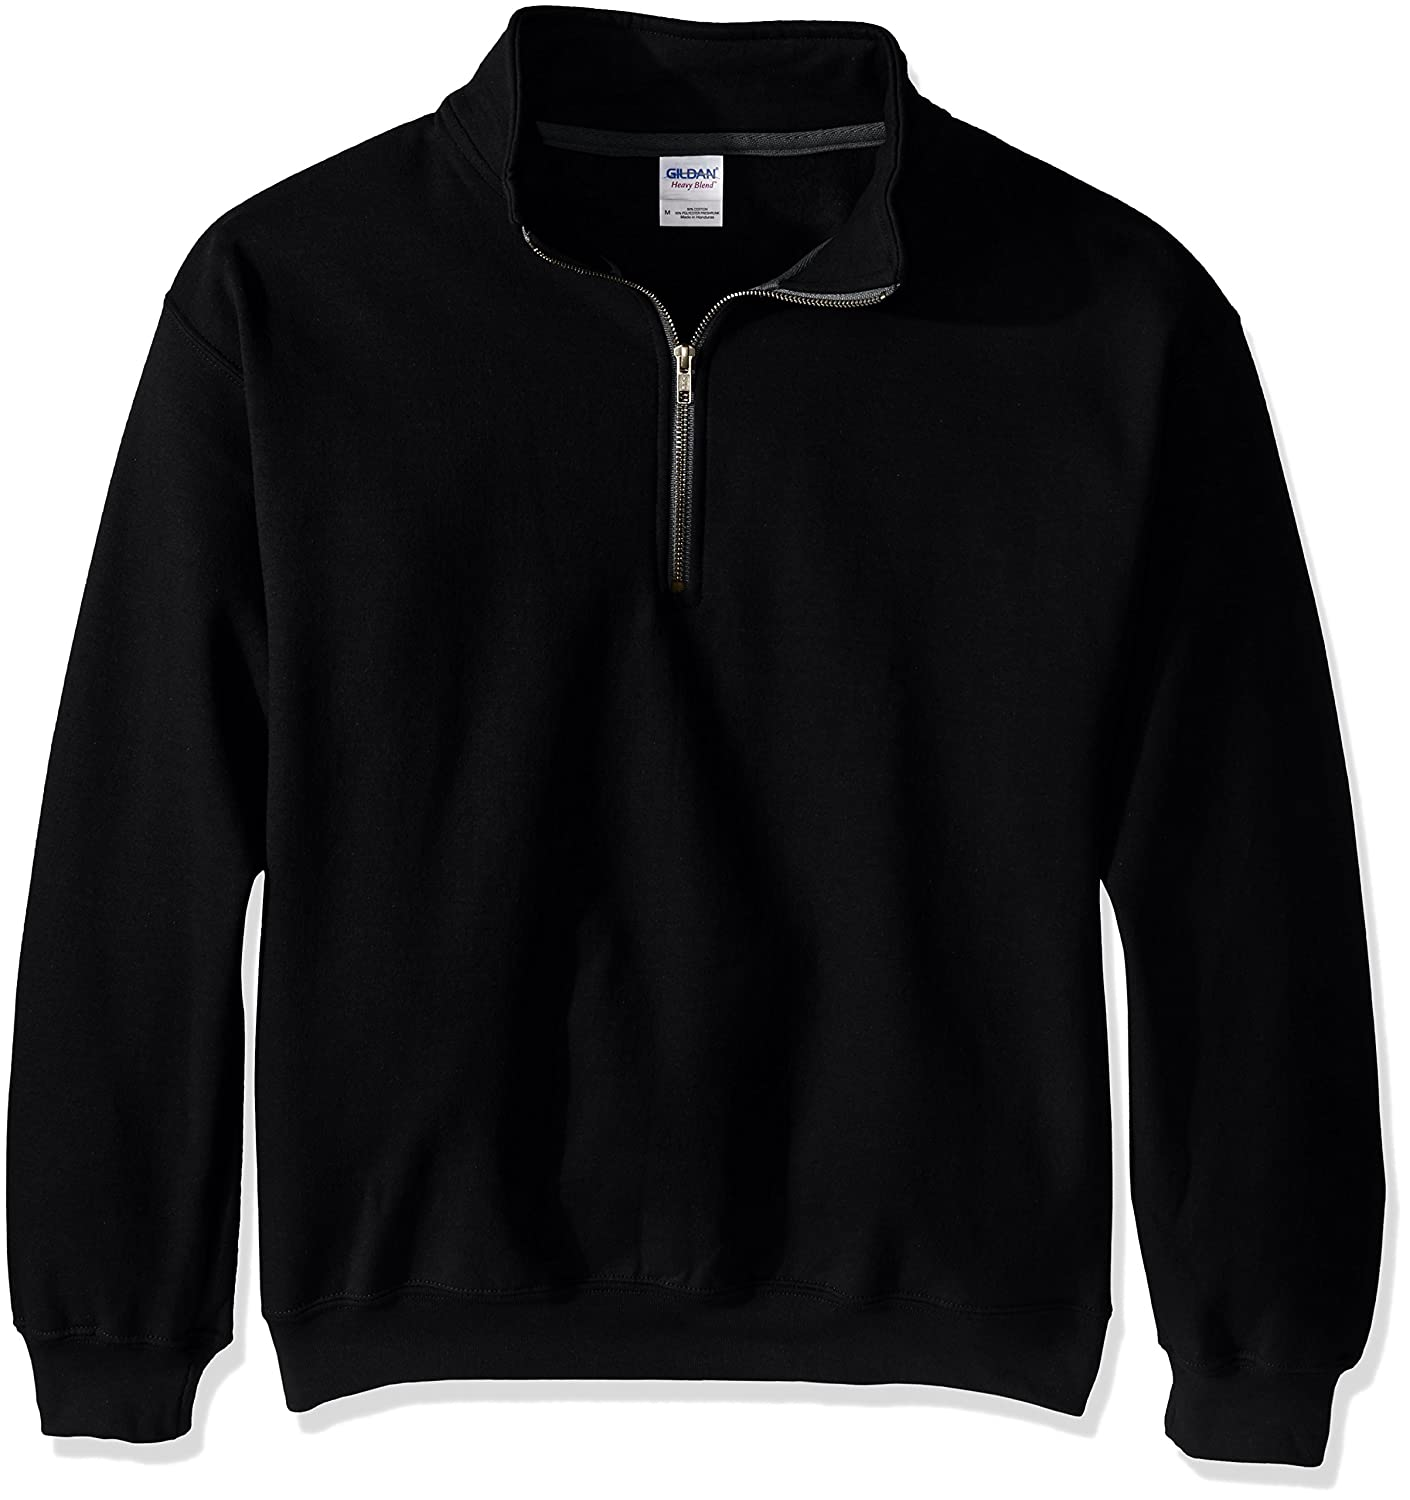 Gildan Mens Fleece Quarter-Zip Cadet Collar Sweatshirt  Amazon.ca  Clothing    Accessories b454bc476f05